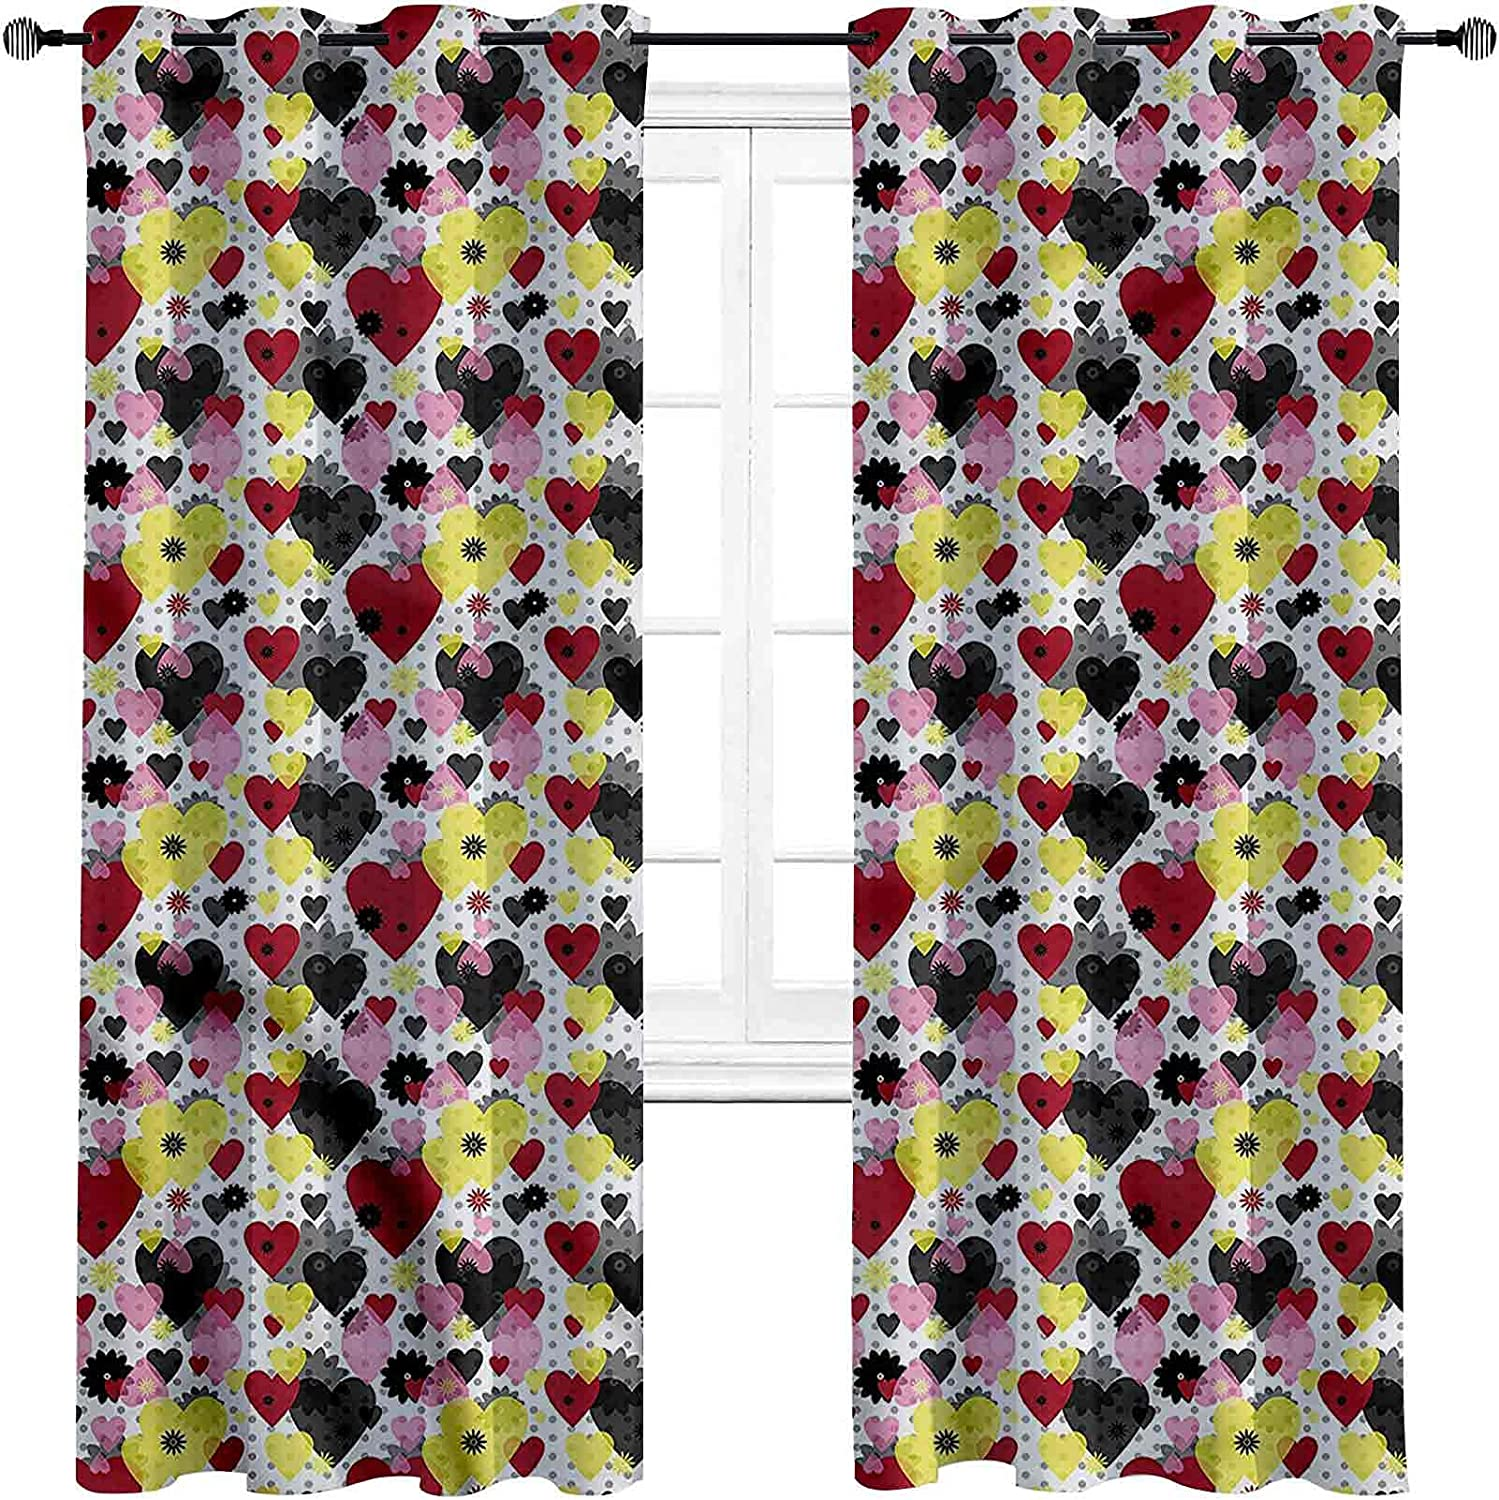 Hearts Shading Insulated Curtain Love and Symbols Max 59% OFF Thre Flowers OFFicial store